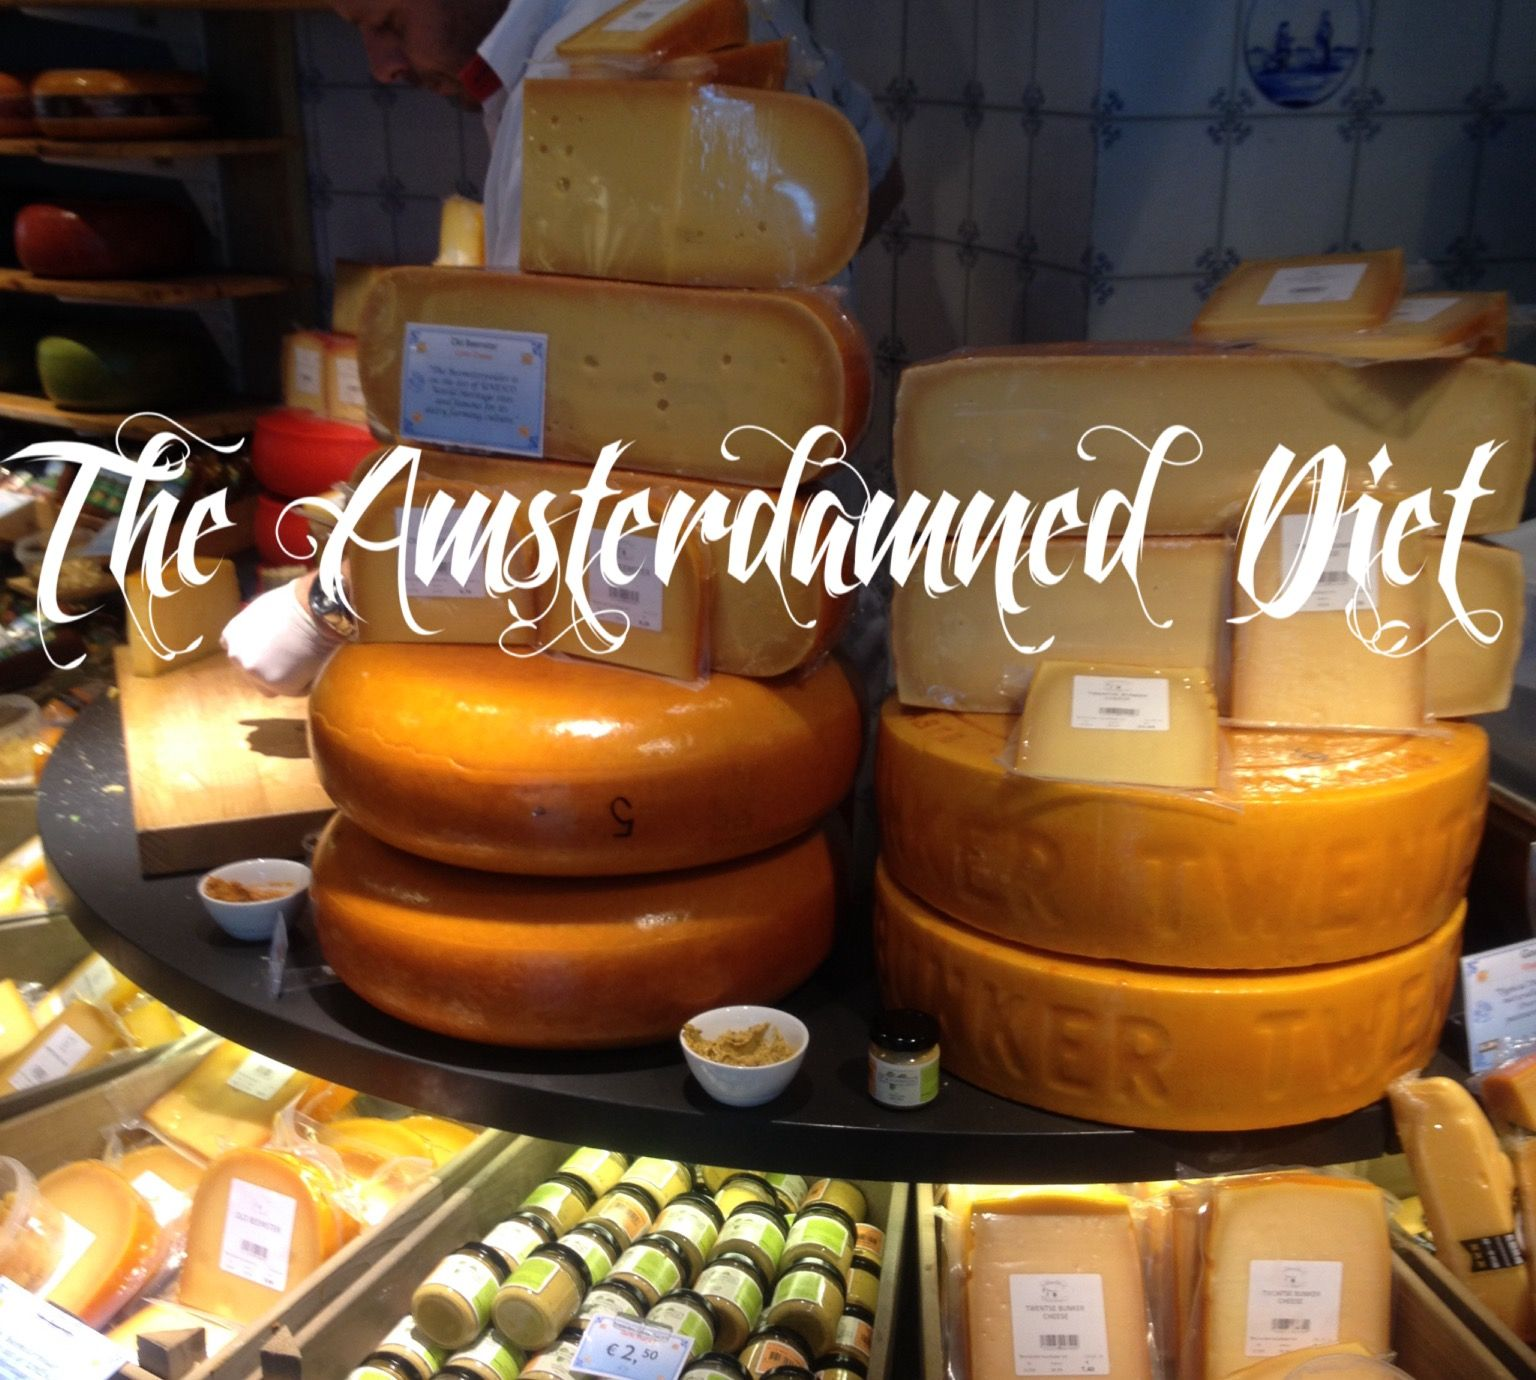 I bet you're all dying to find out how I got on in Amsterdam? The city of debauchery, sin and general devilment. But this time, it was a much more clean experience I was seeking! First of all, it w…